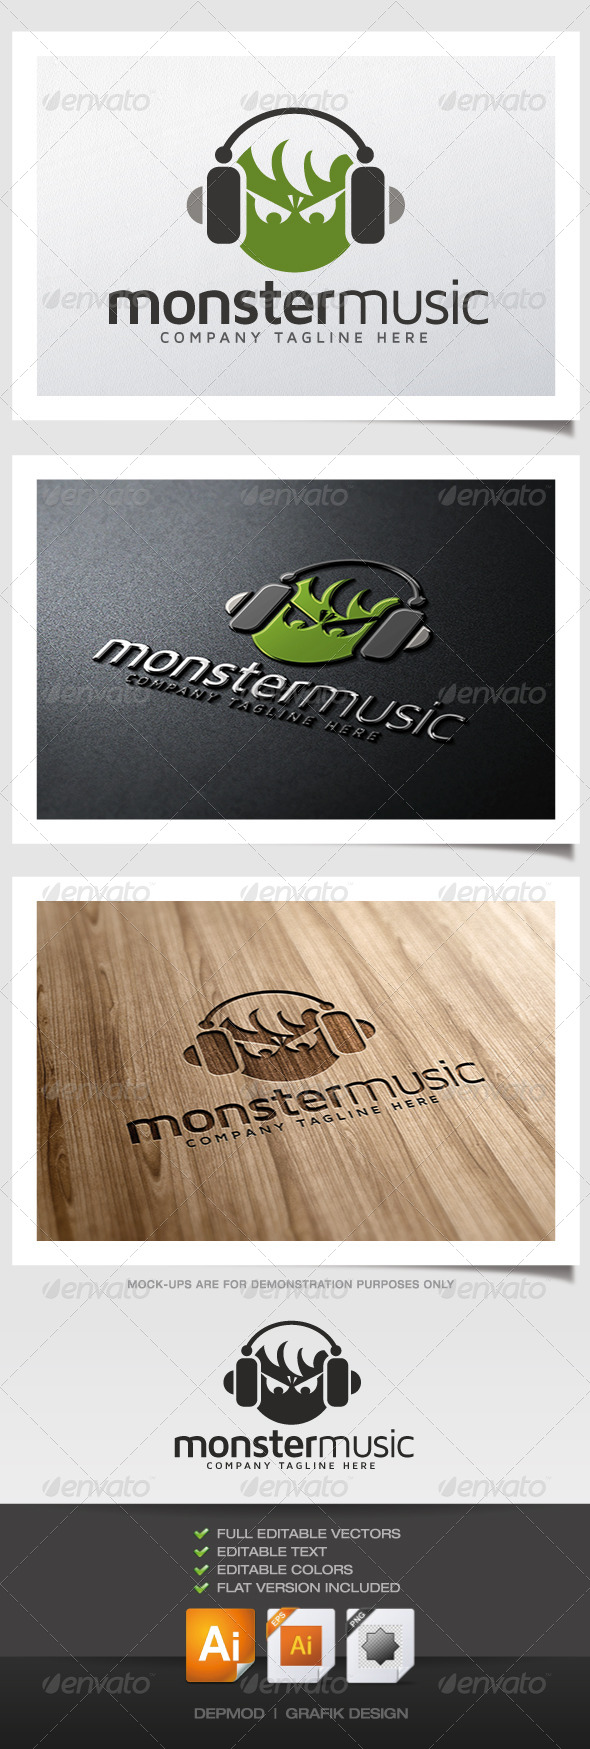 GraphicRiver Monster Music Logo 5351208